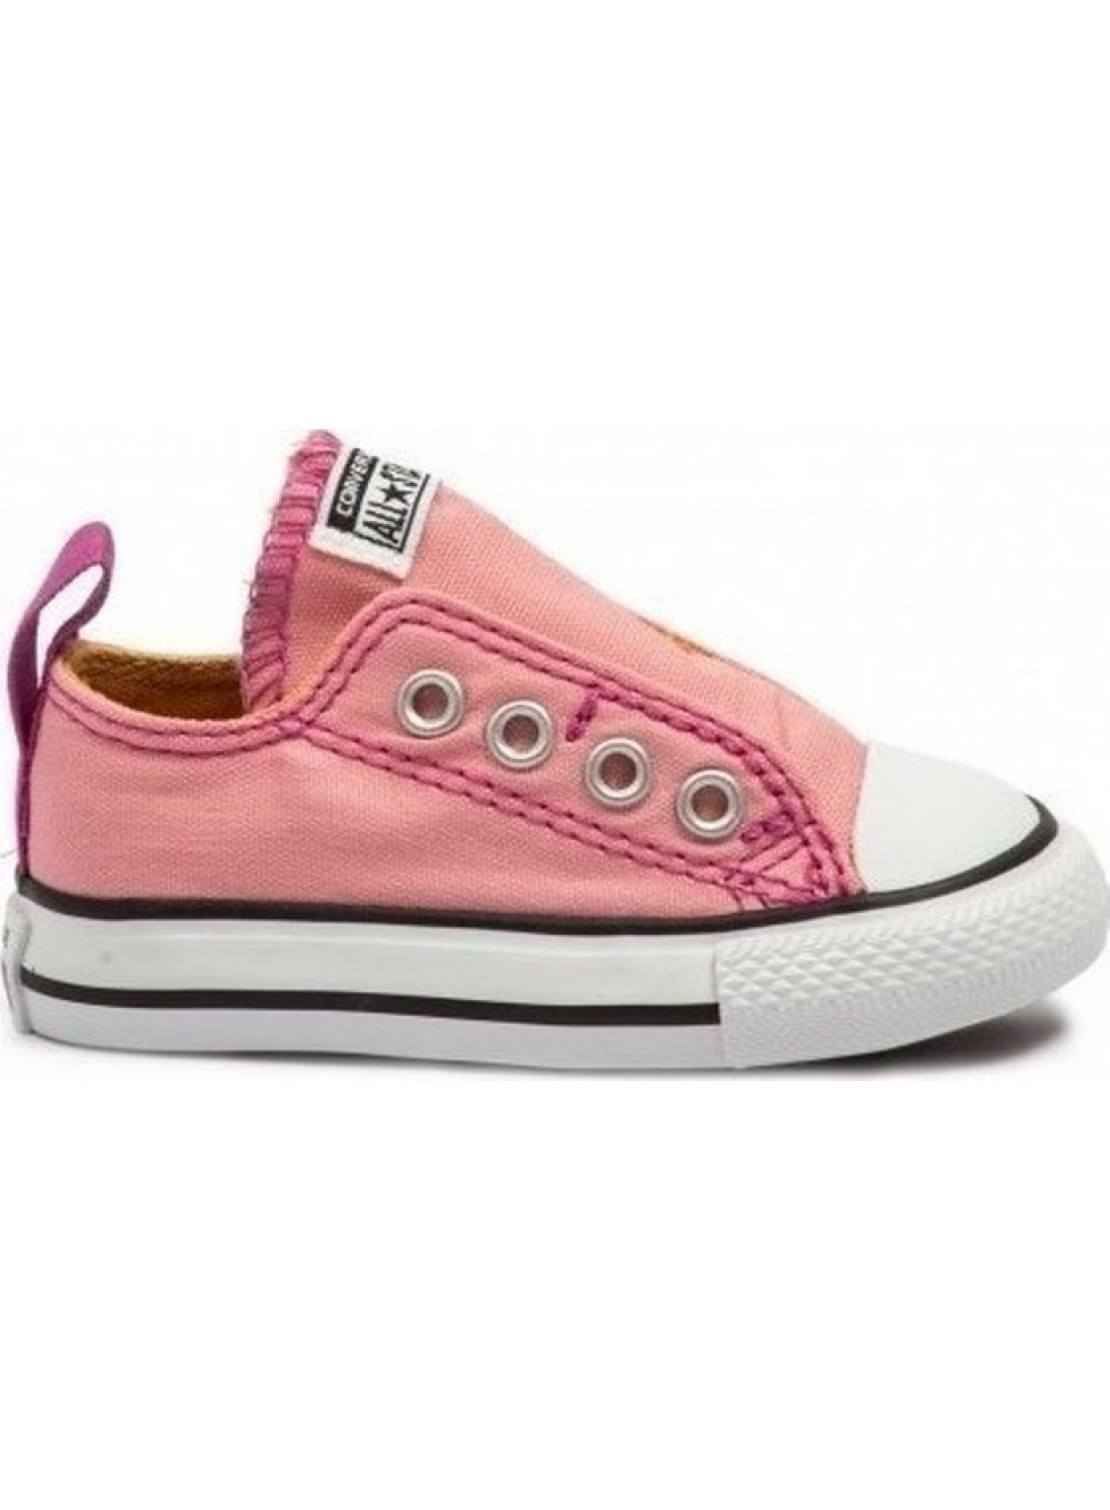 converse all star rosas niña